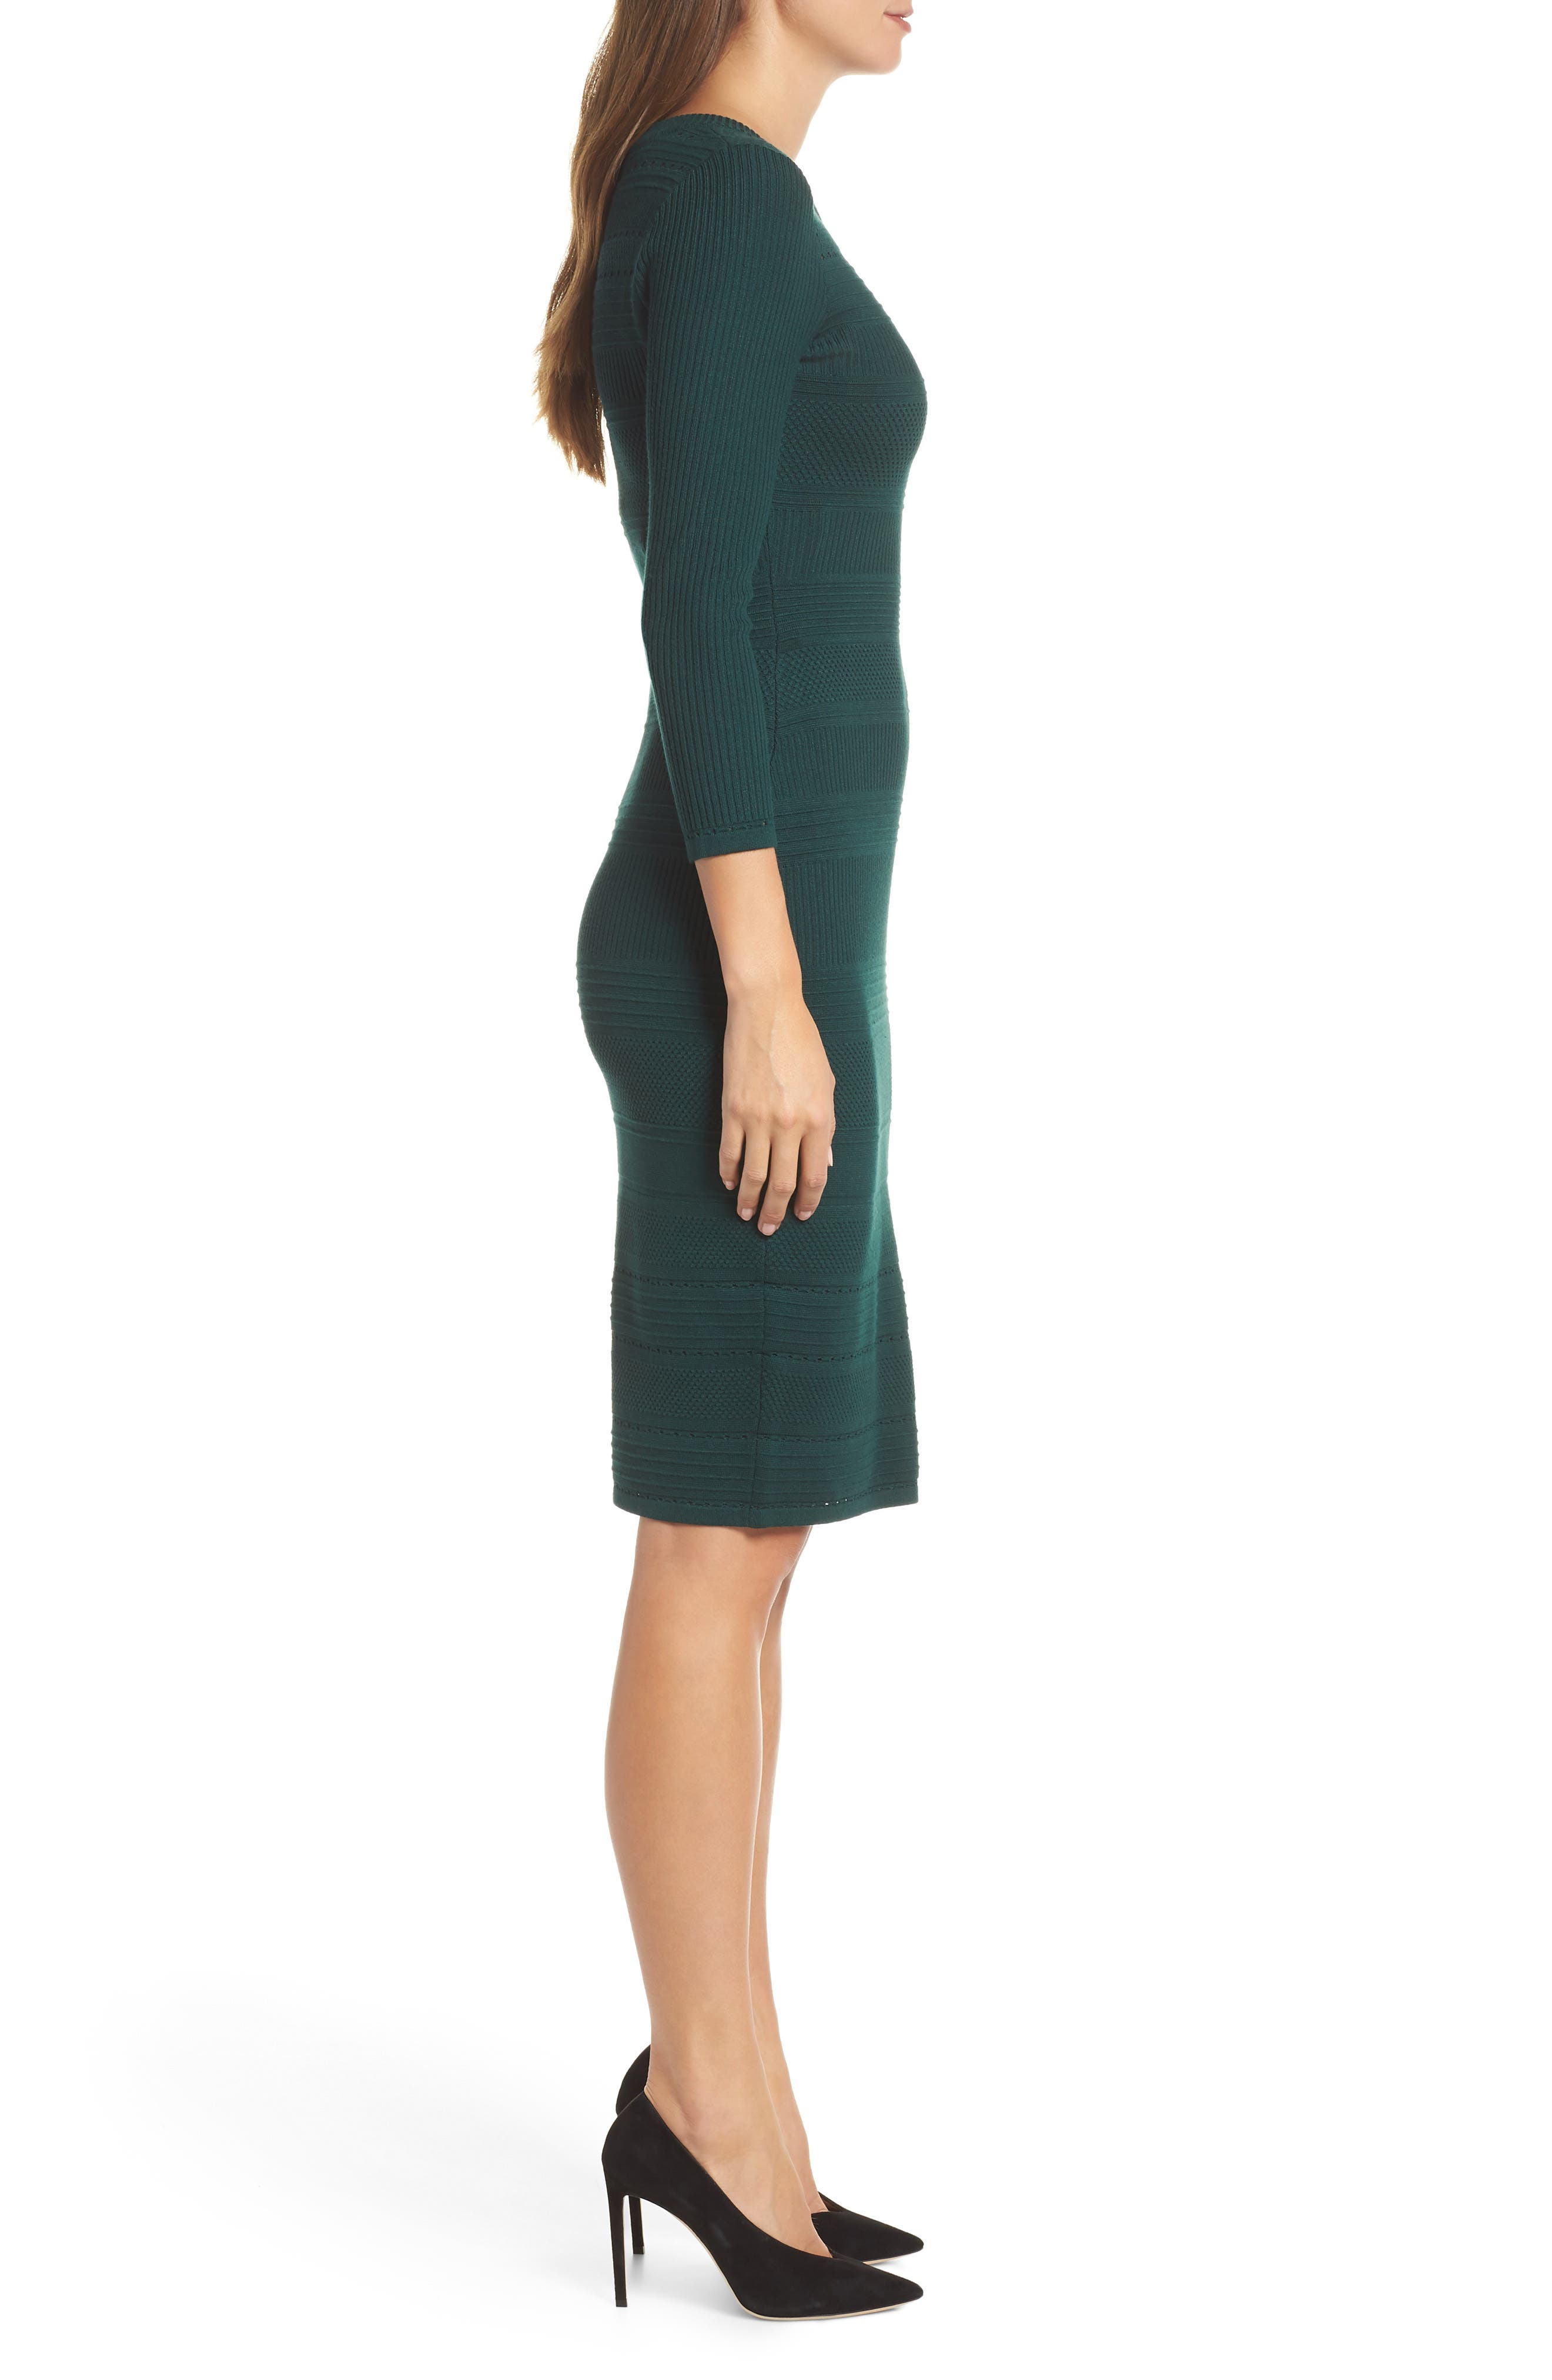 ELIZA J, Stitch Detail Sweater Dress, Alternate thumbnail 4, color, GREEN